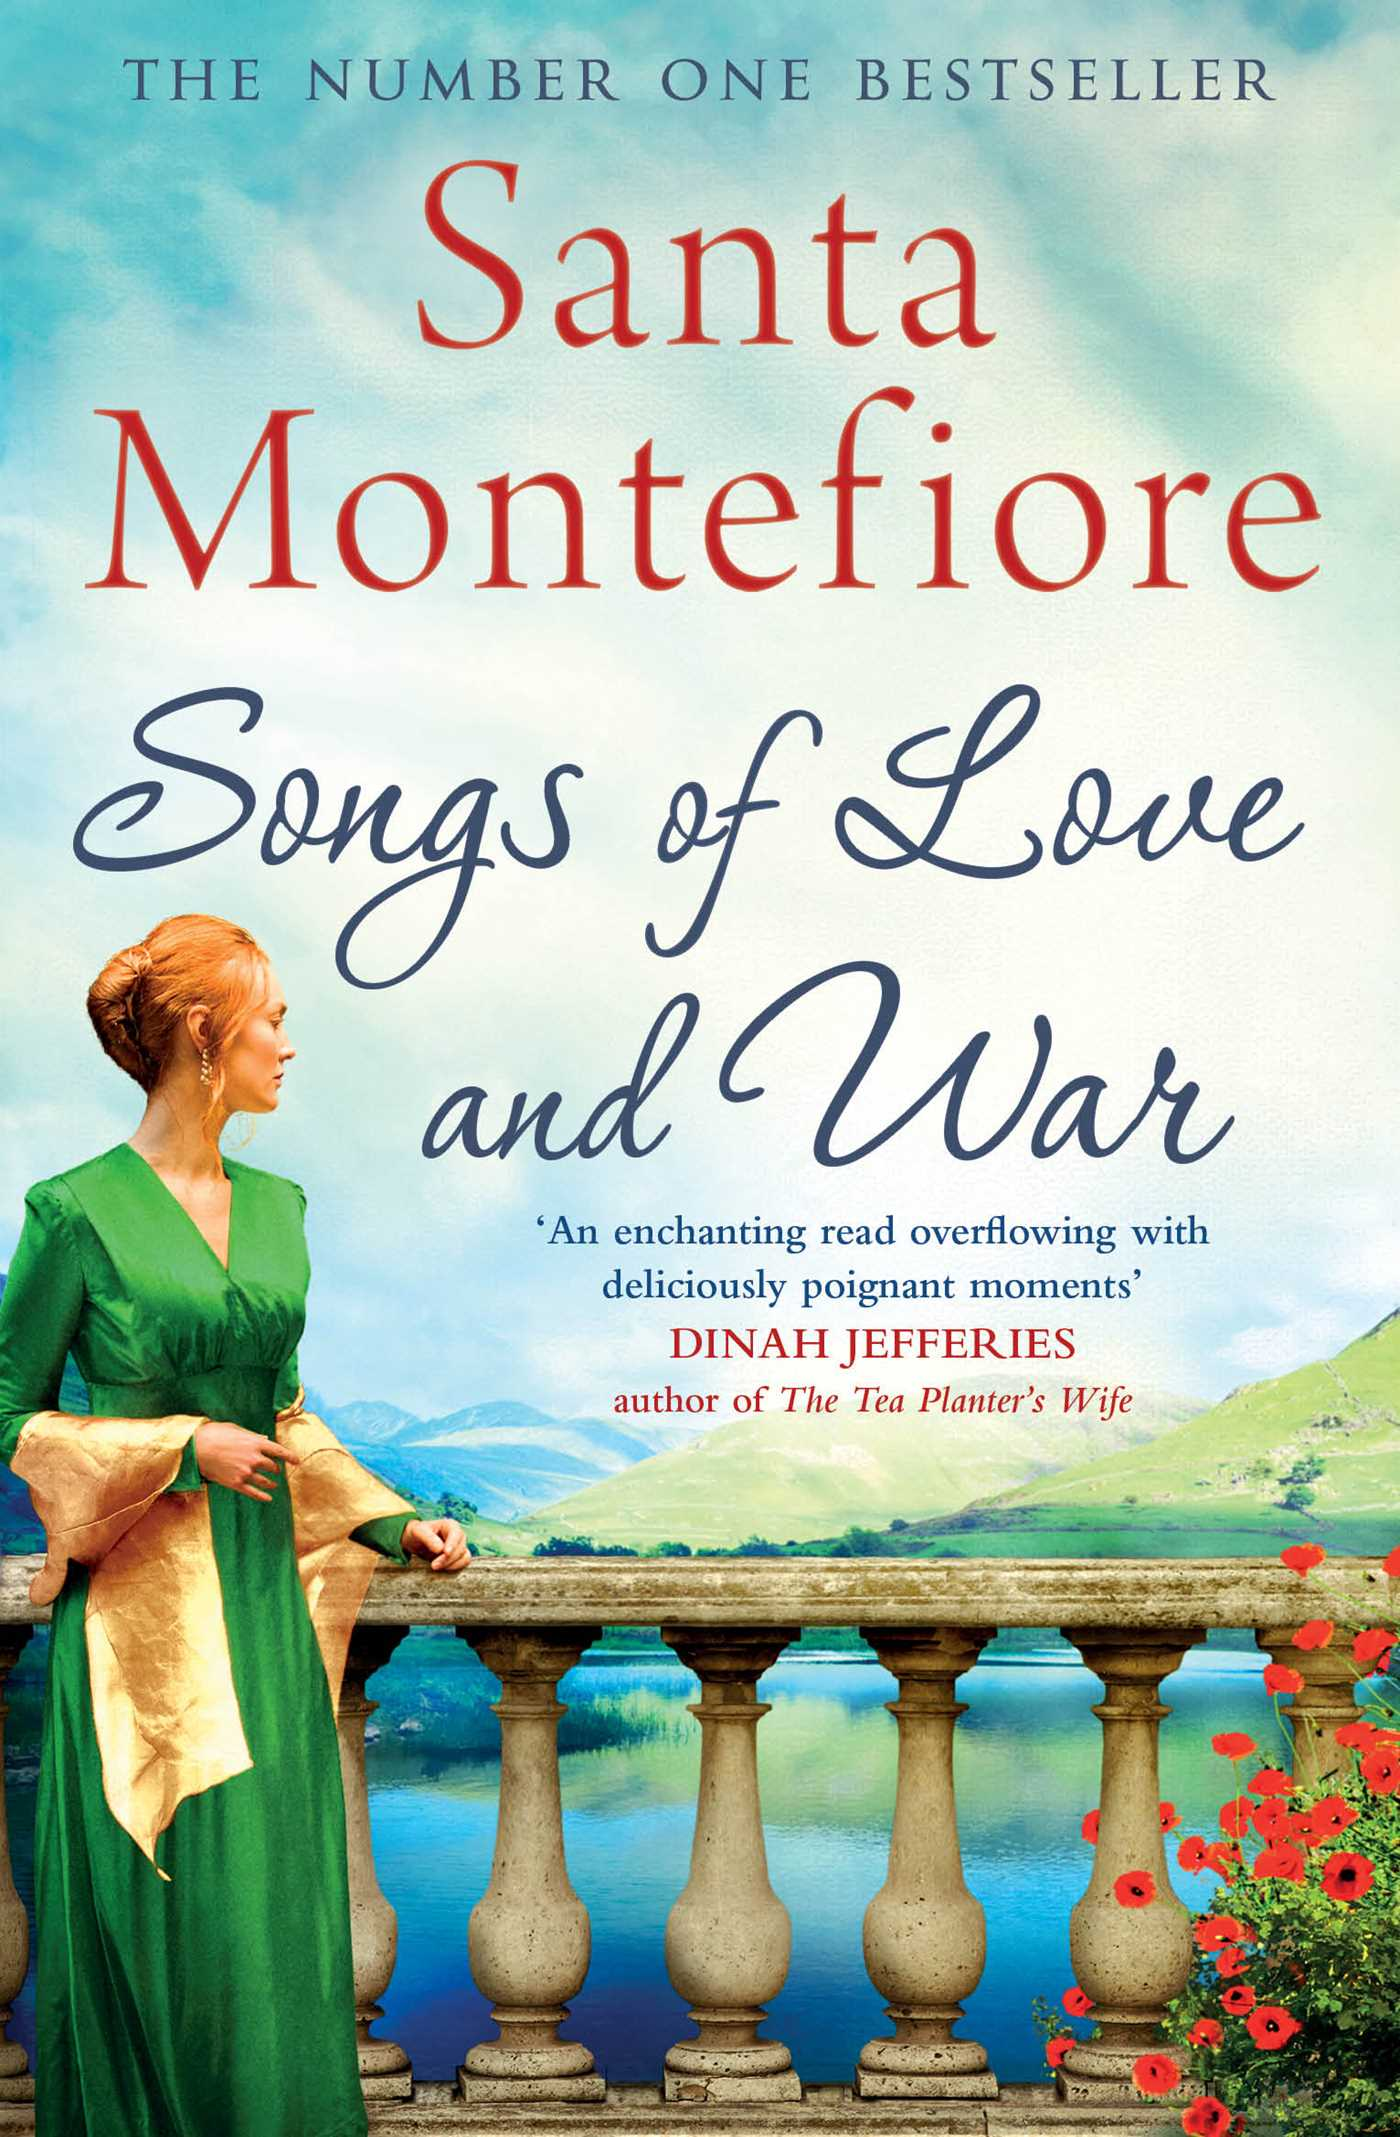 Santa montefiore official publisher page simon schuster uk book cover image jpg songs of love and war ebook 9781471135873 fandeluxe Ebook collections